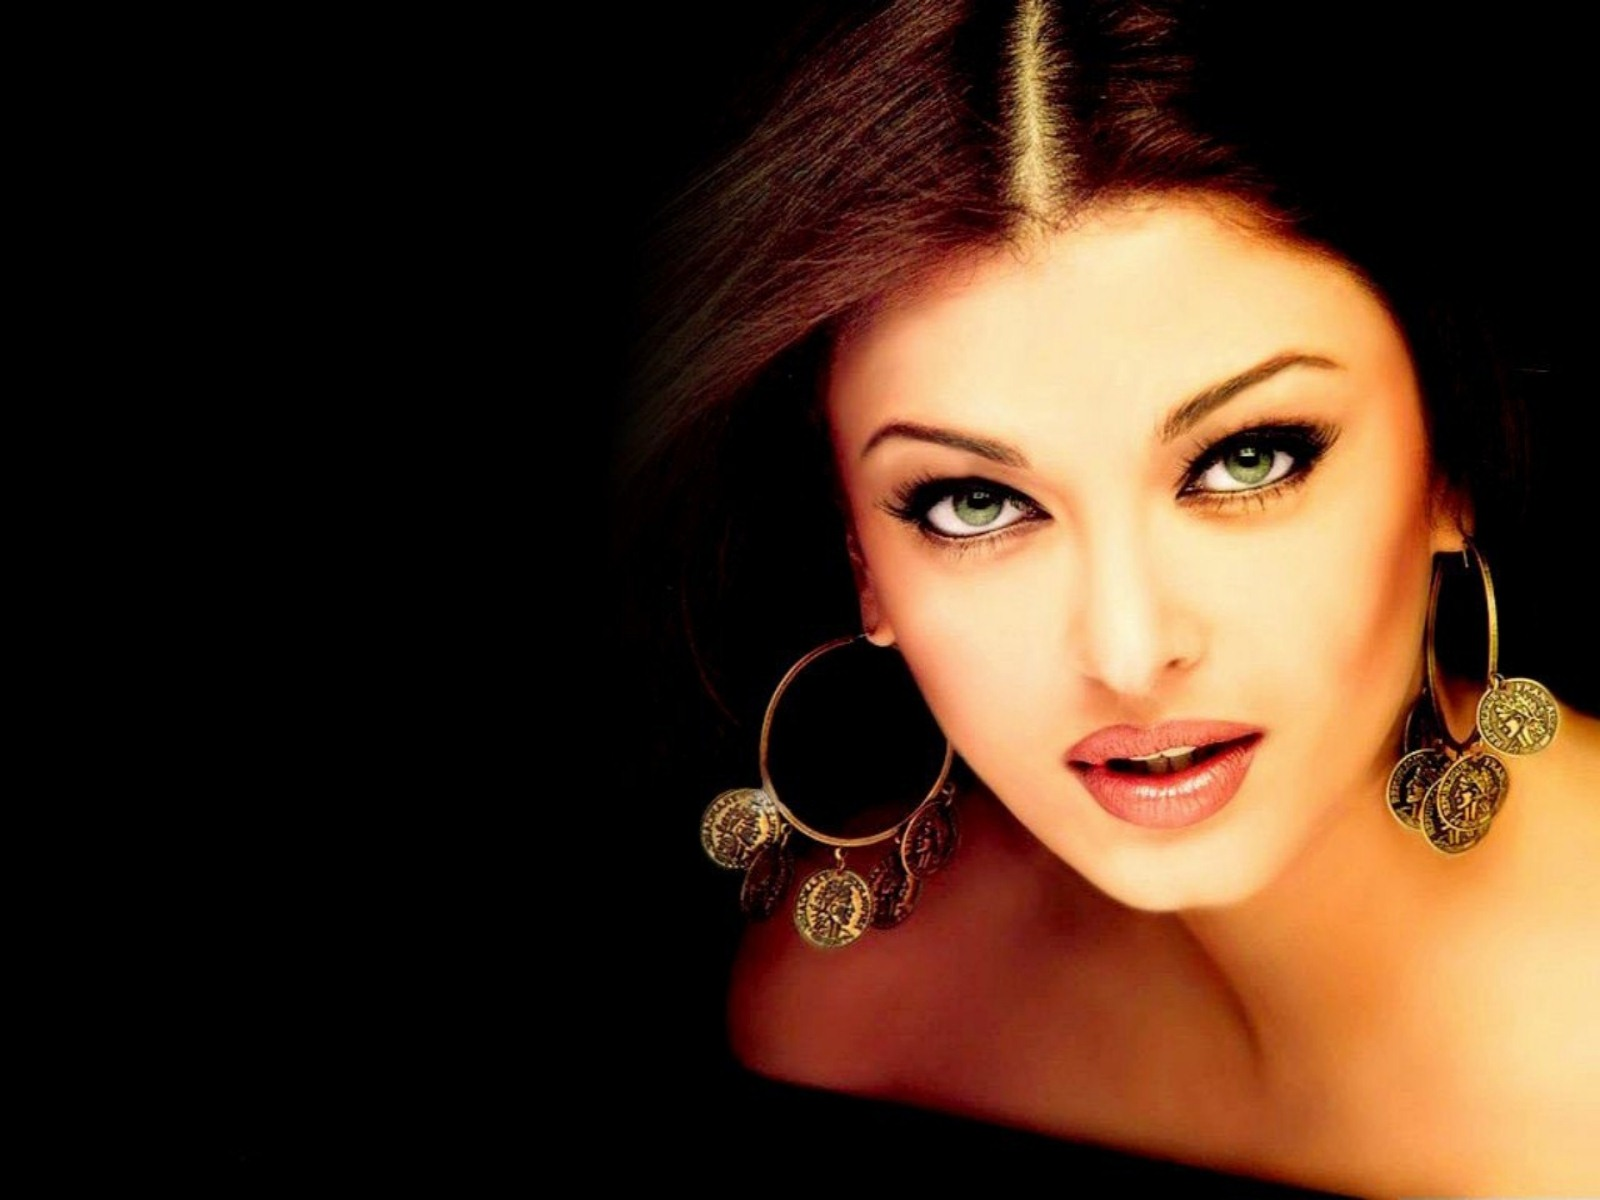 Hot Bollywood Actress Aishwarya Rai